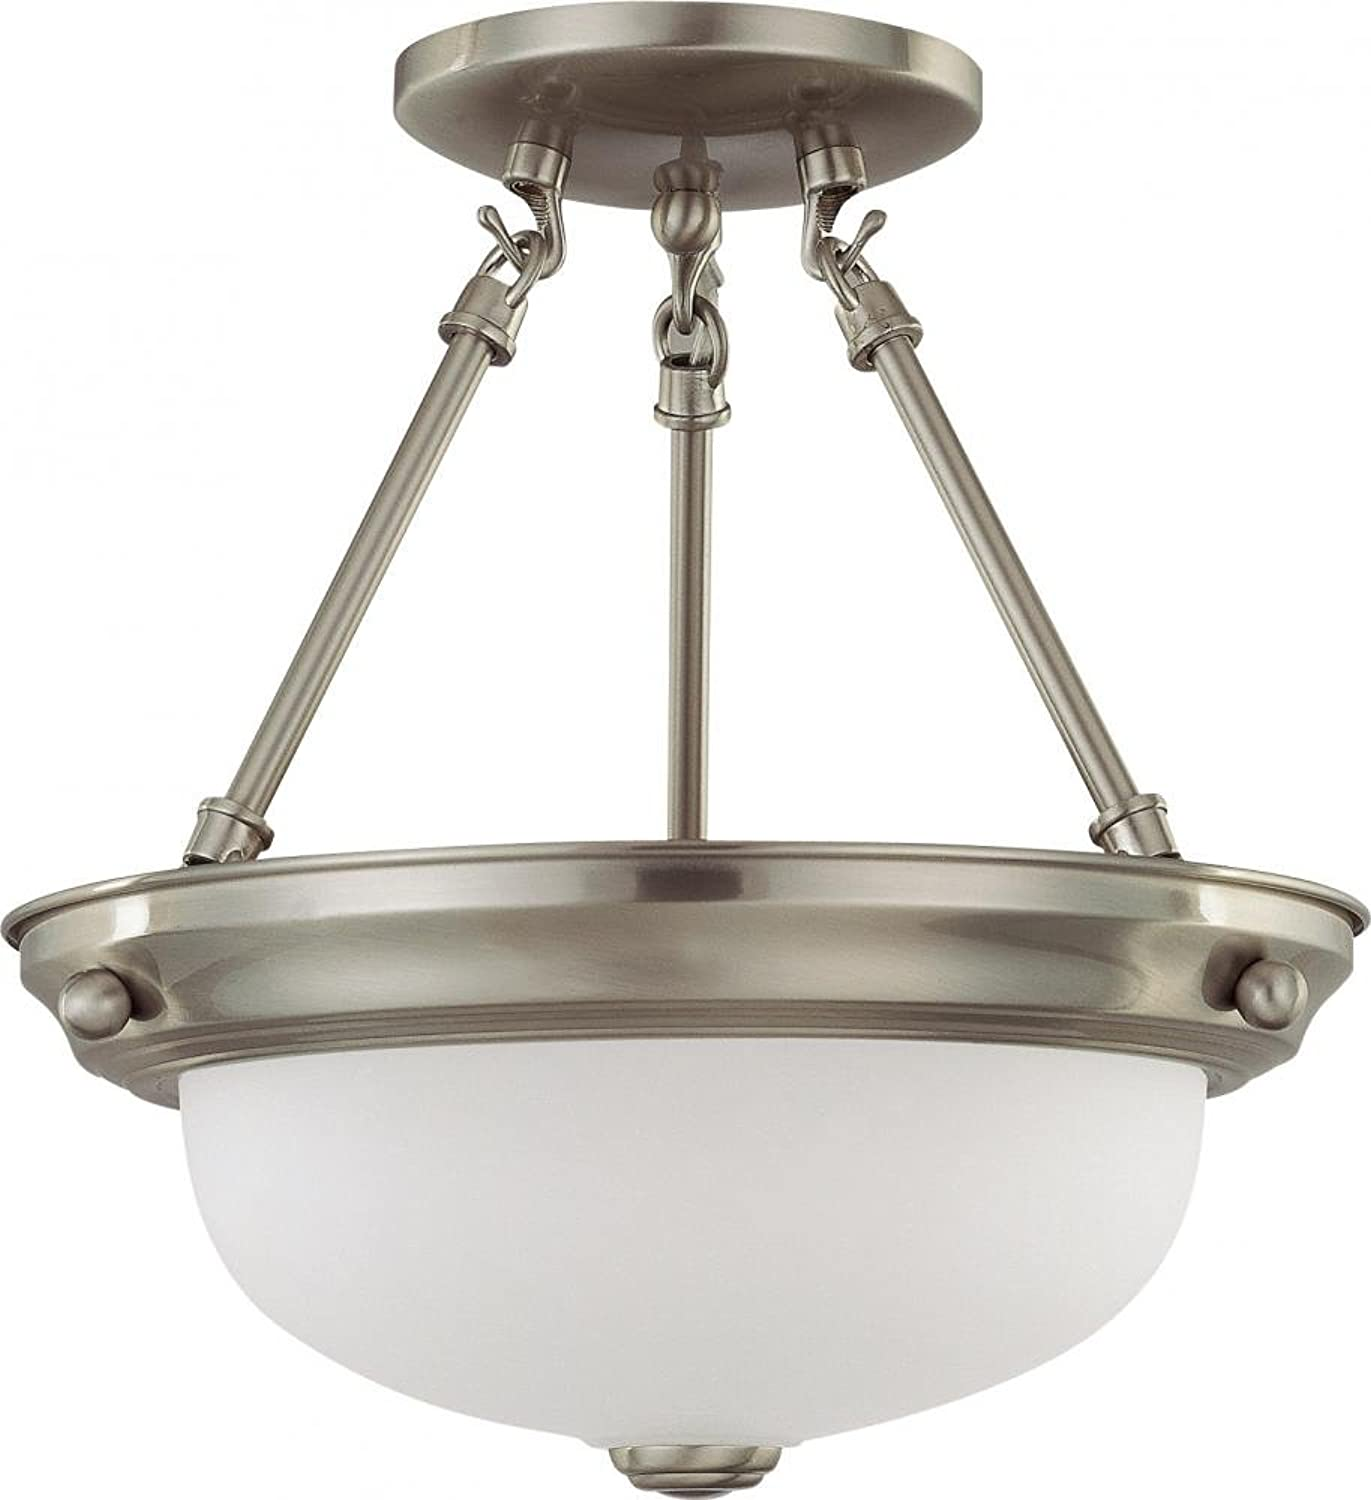 Nuvo Lighting 60 3244 Two Light Semi Flush Mount, Brushed Nickel Frosted Glass